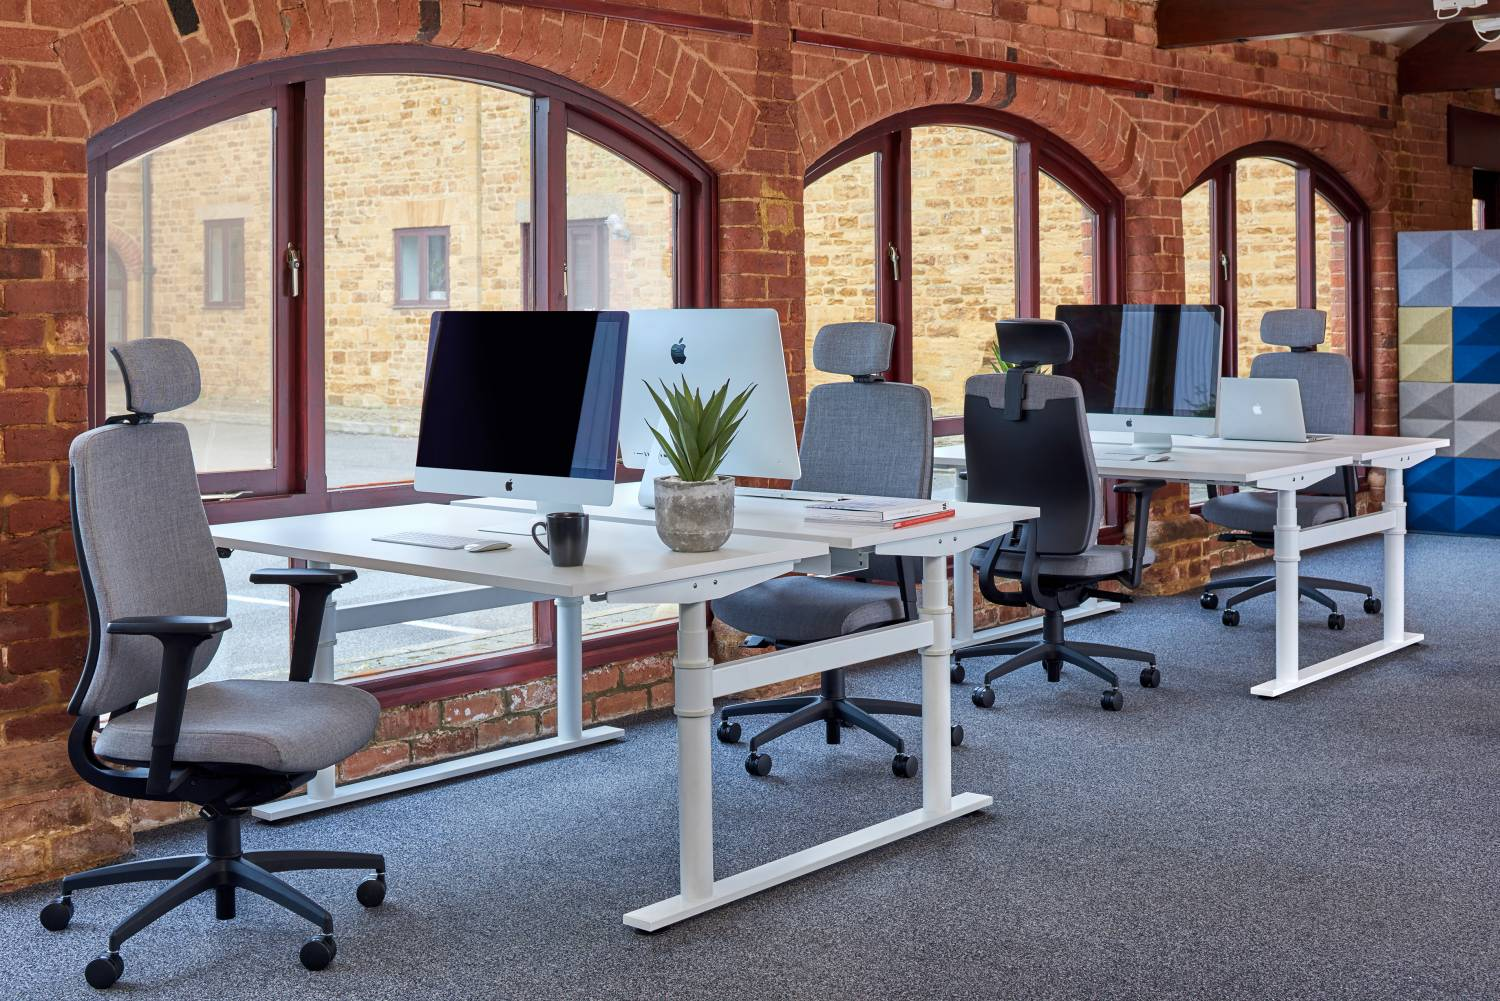 Grey Task Chairs with Headrests in Office